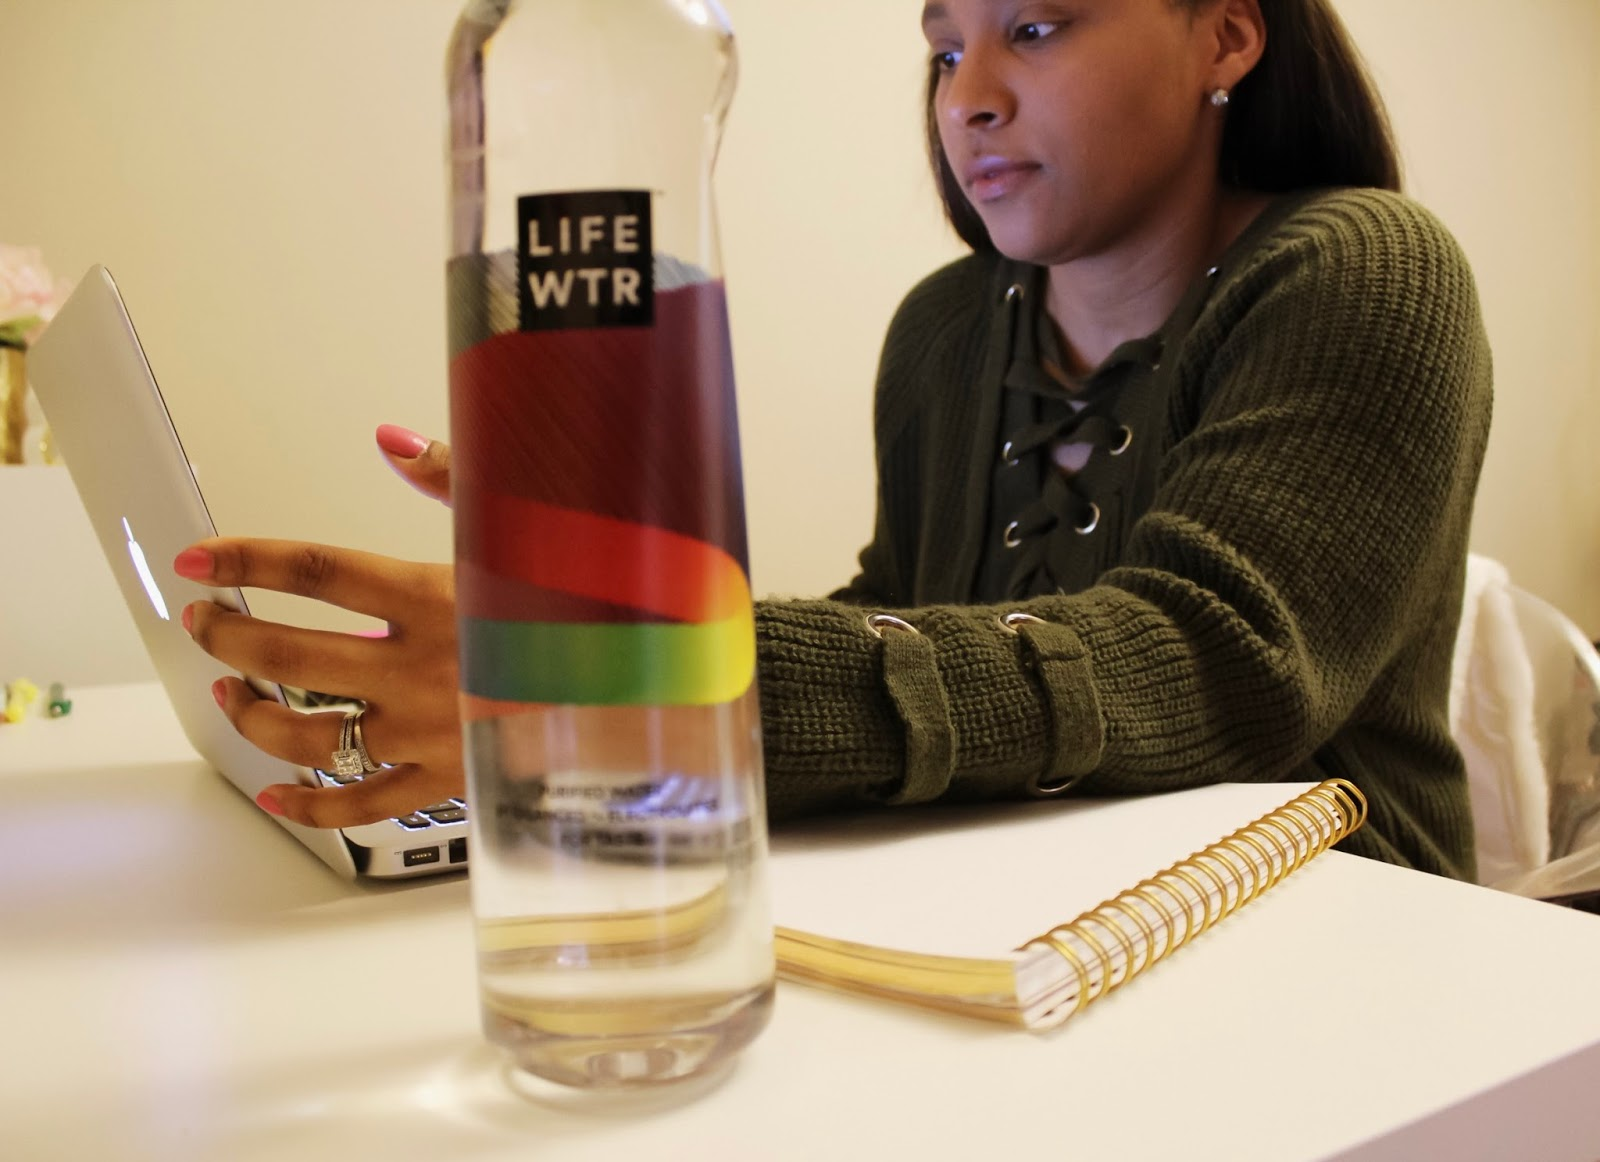 LIFEWTR, 7-eleve, drinks, water, thirsty, lifestyle, purified water, working from home, how to stay motivated